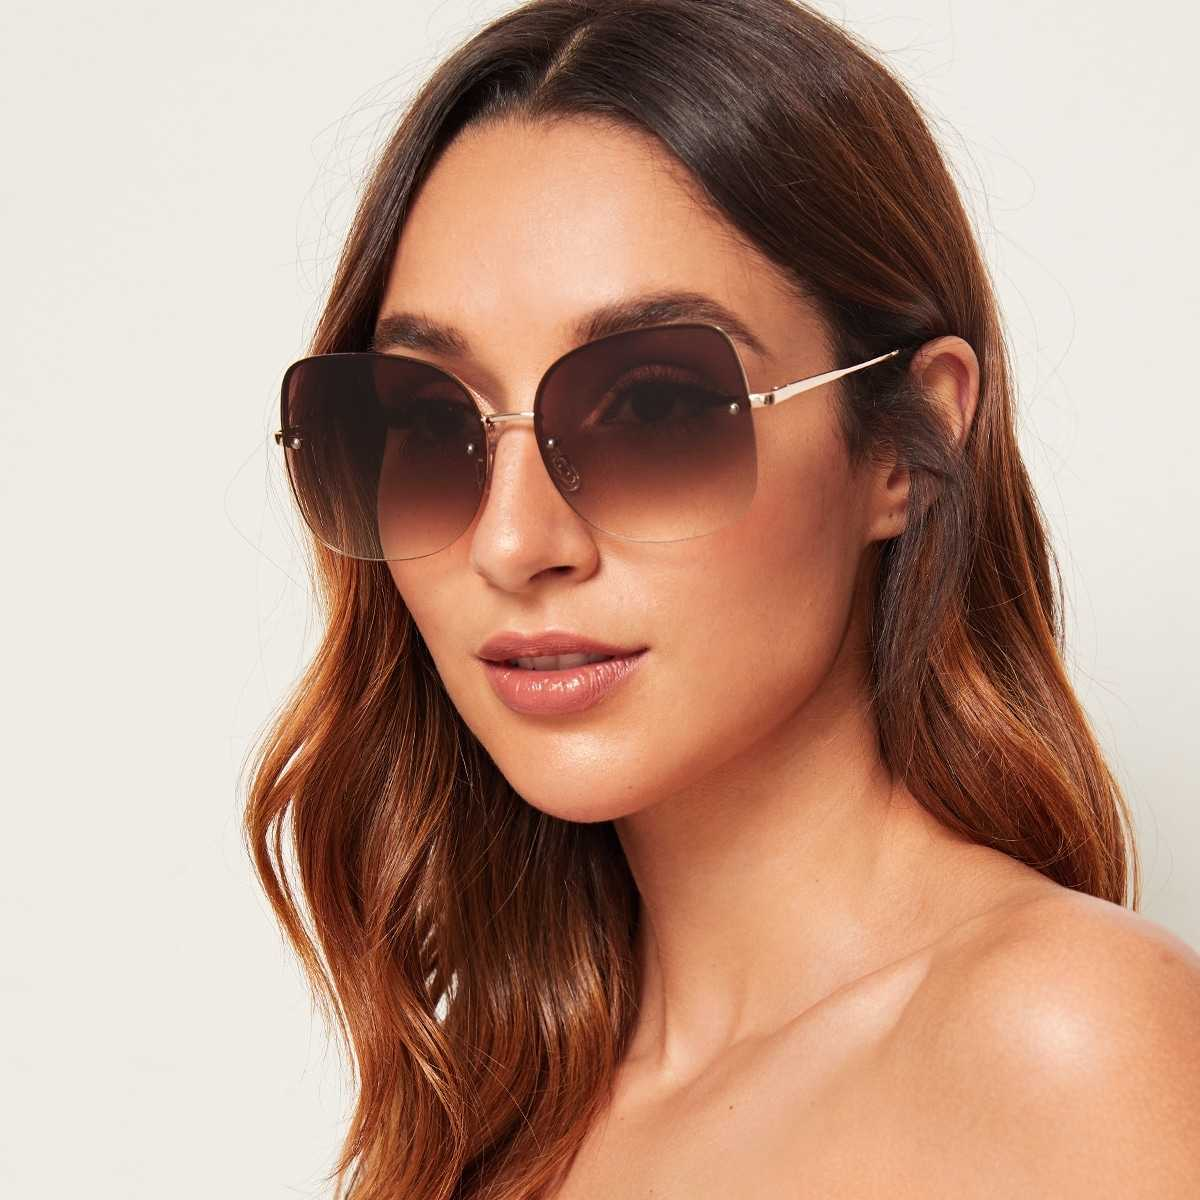 Rimless Flat Lens Sunglasses With Case in Brown by ROMWE on GOOFASH